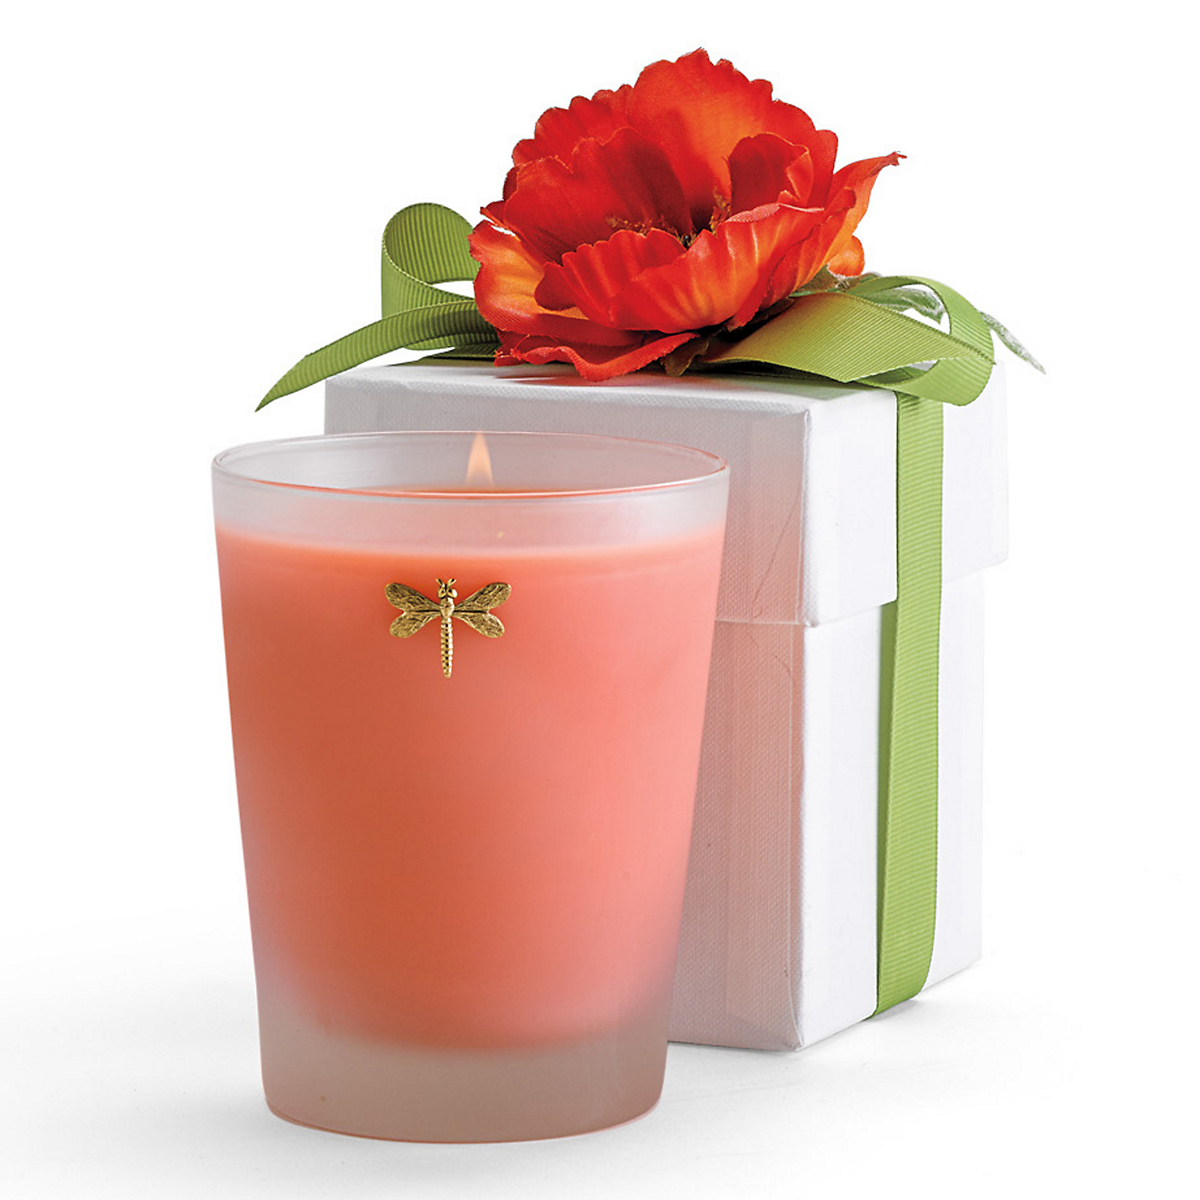 Printemps Isle Of View With Dragonfly Candle